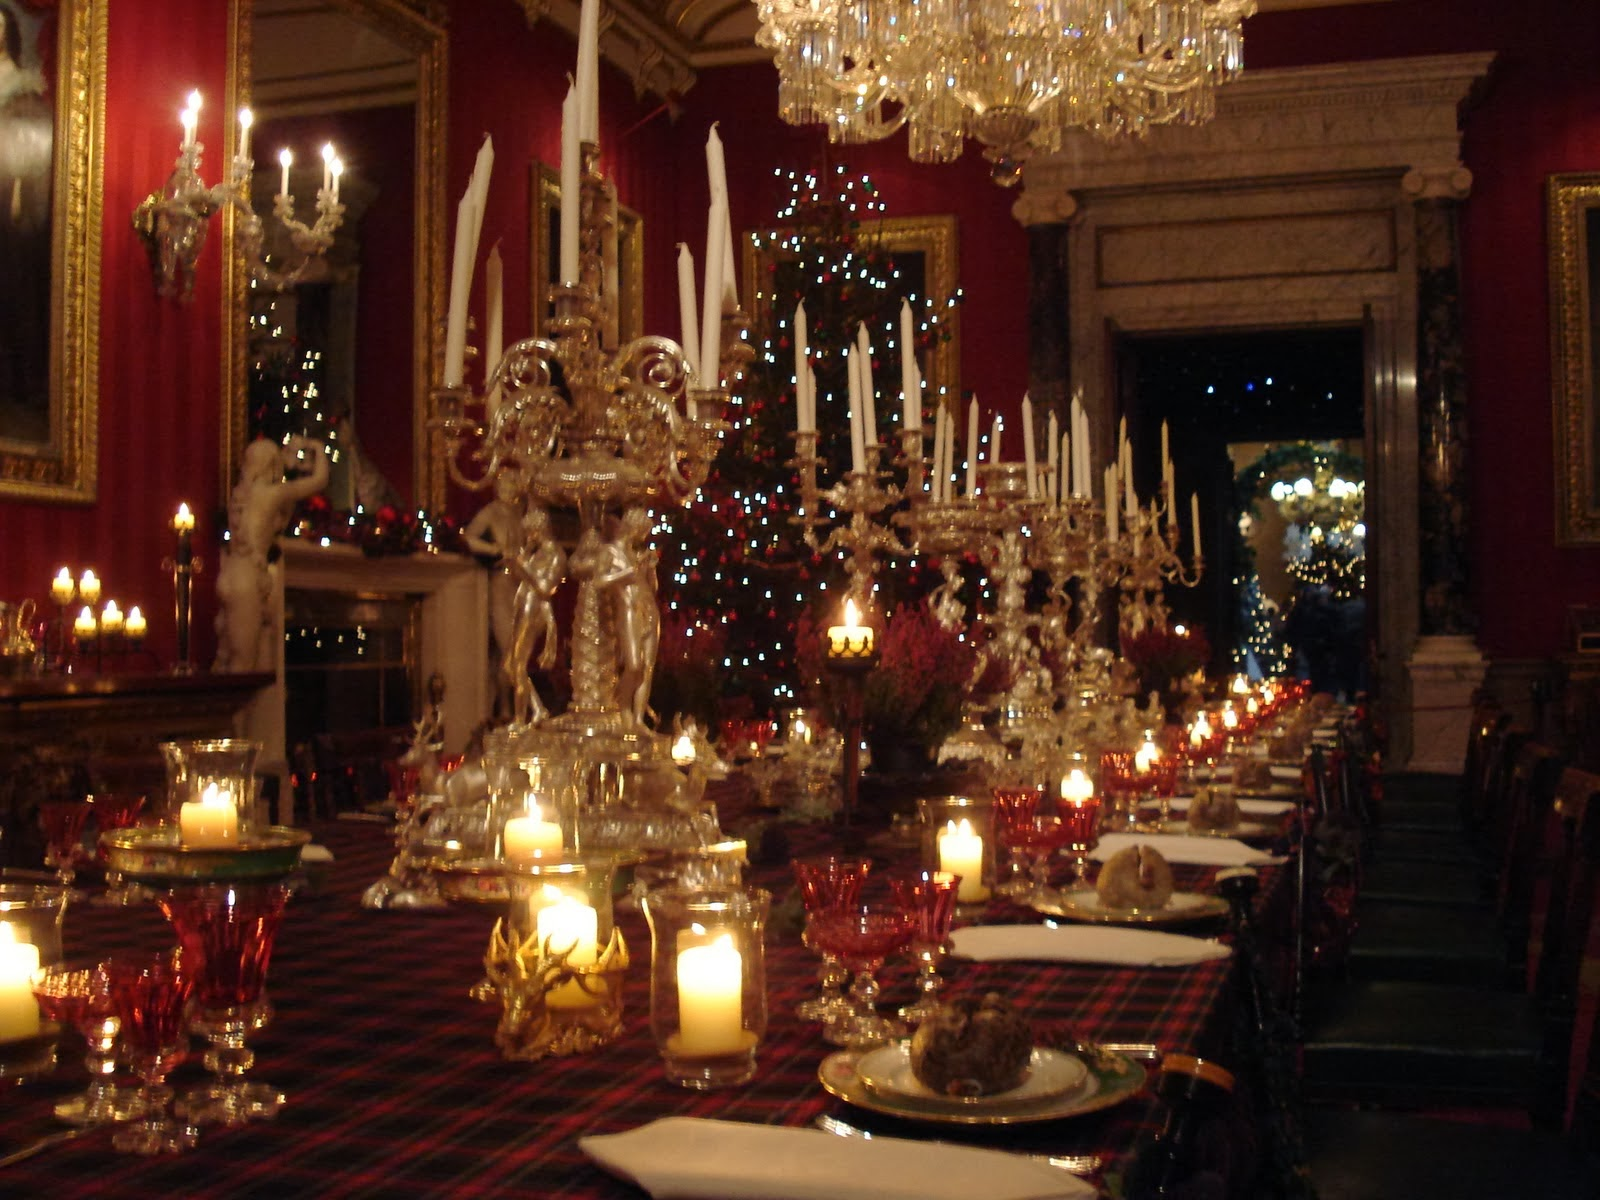 Chatsworth house dining table with holiday decor for Christmas decorations for home interior